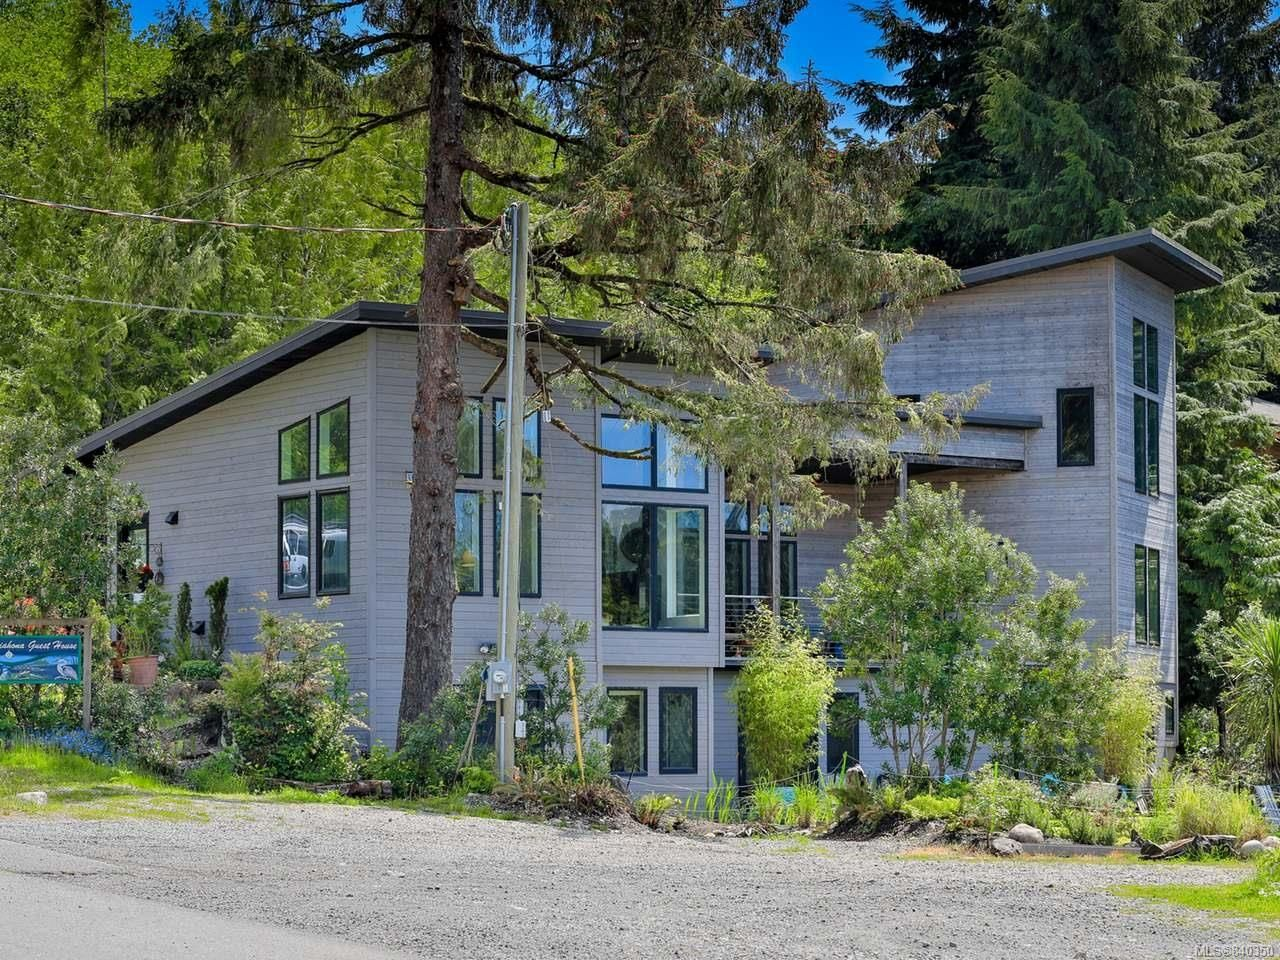 Photo 67: Photos: 1068 Helen Rd in UCLUELET: PA Ucluelet House for sale (Port Alberni)  : MLS®# 840350